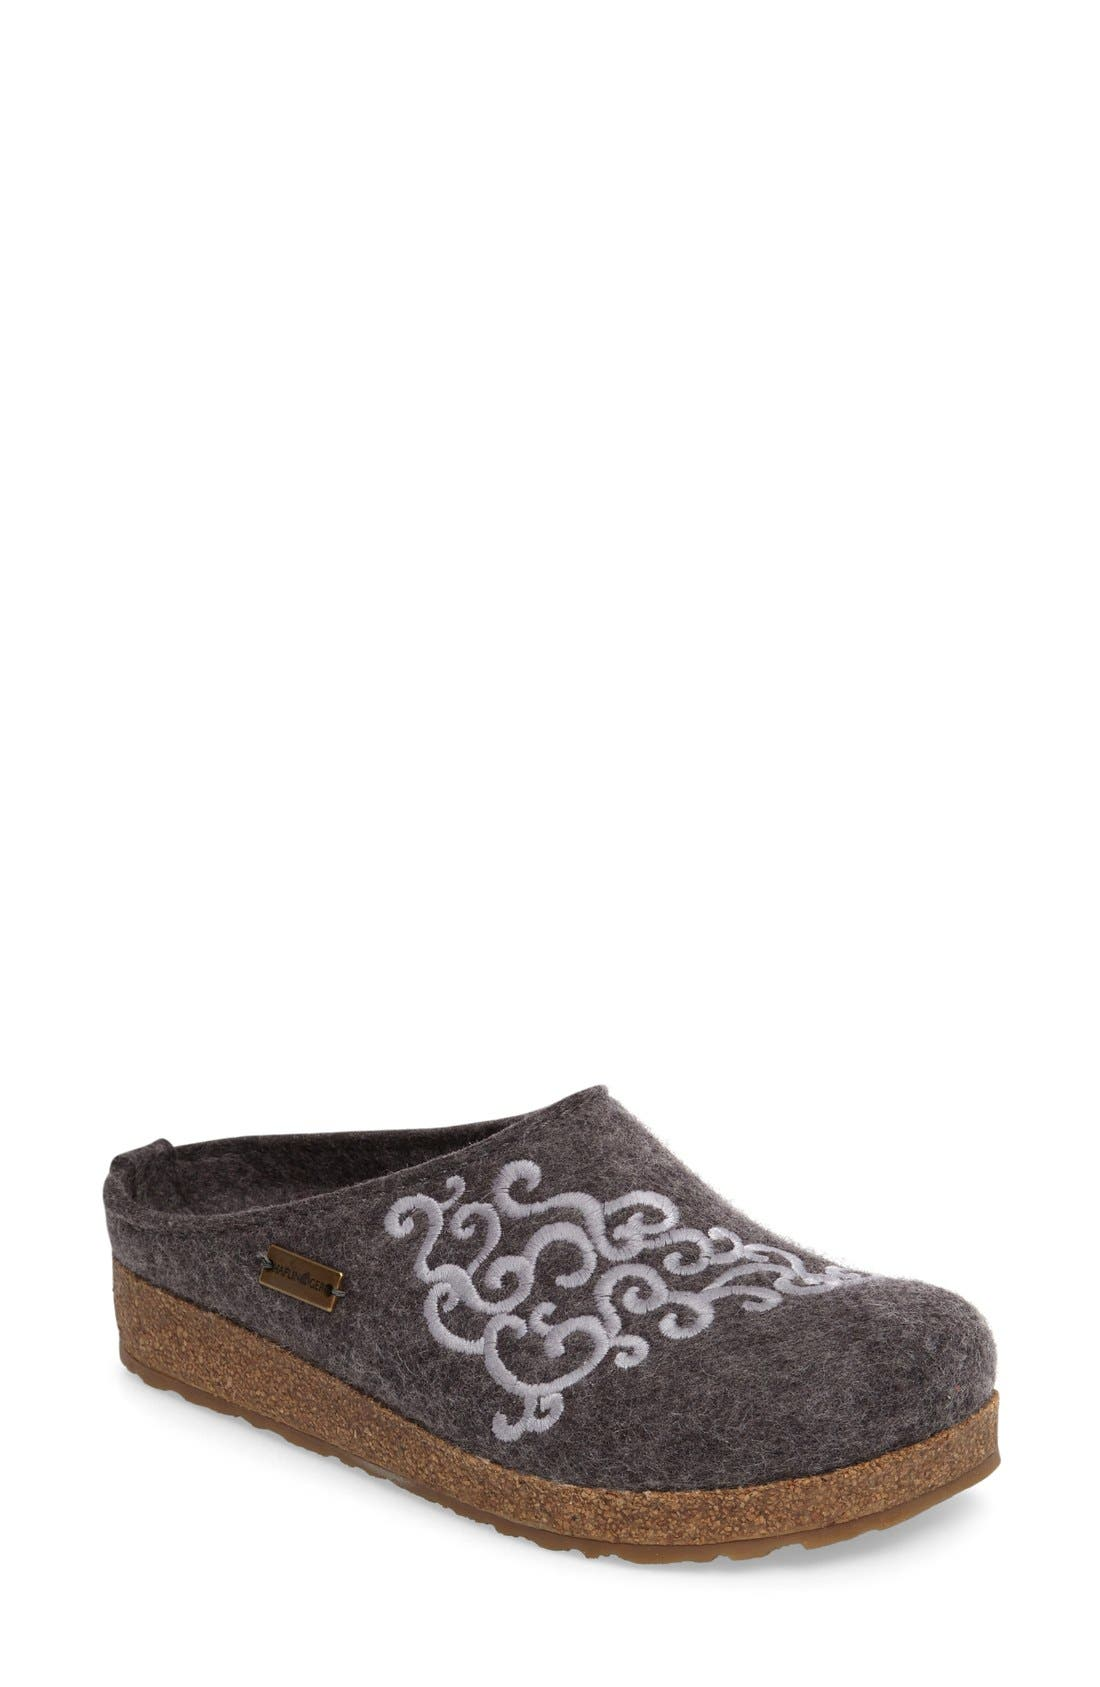 Alternate Image 1 Selected - Haflinger Symphony Slipper (Women)